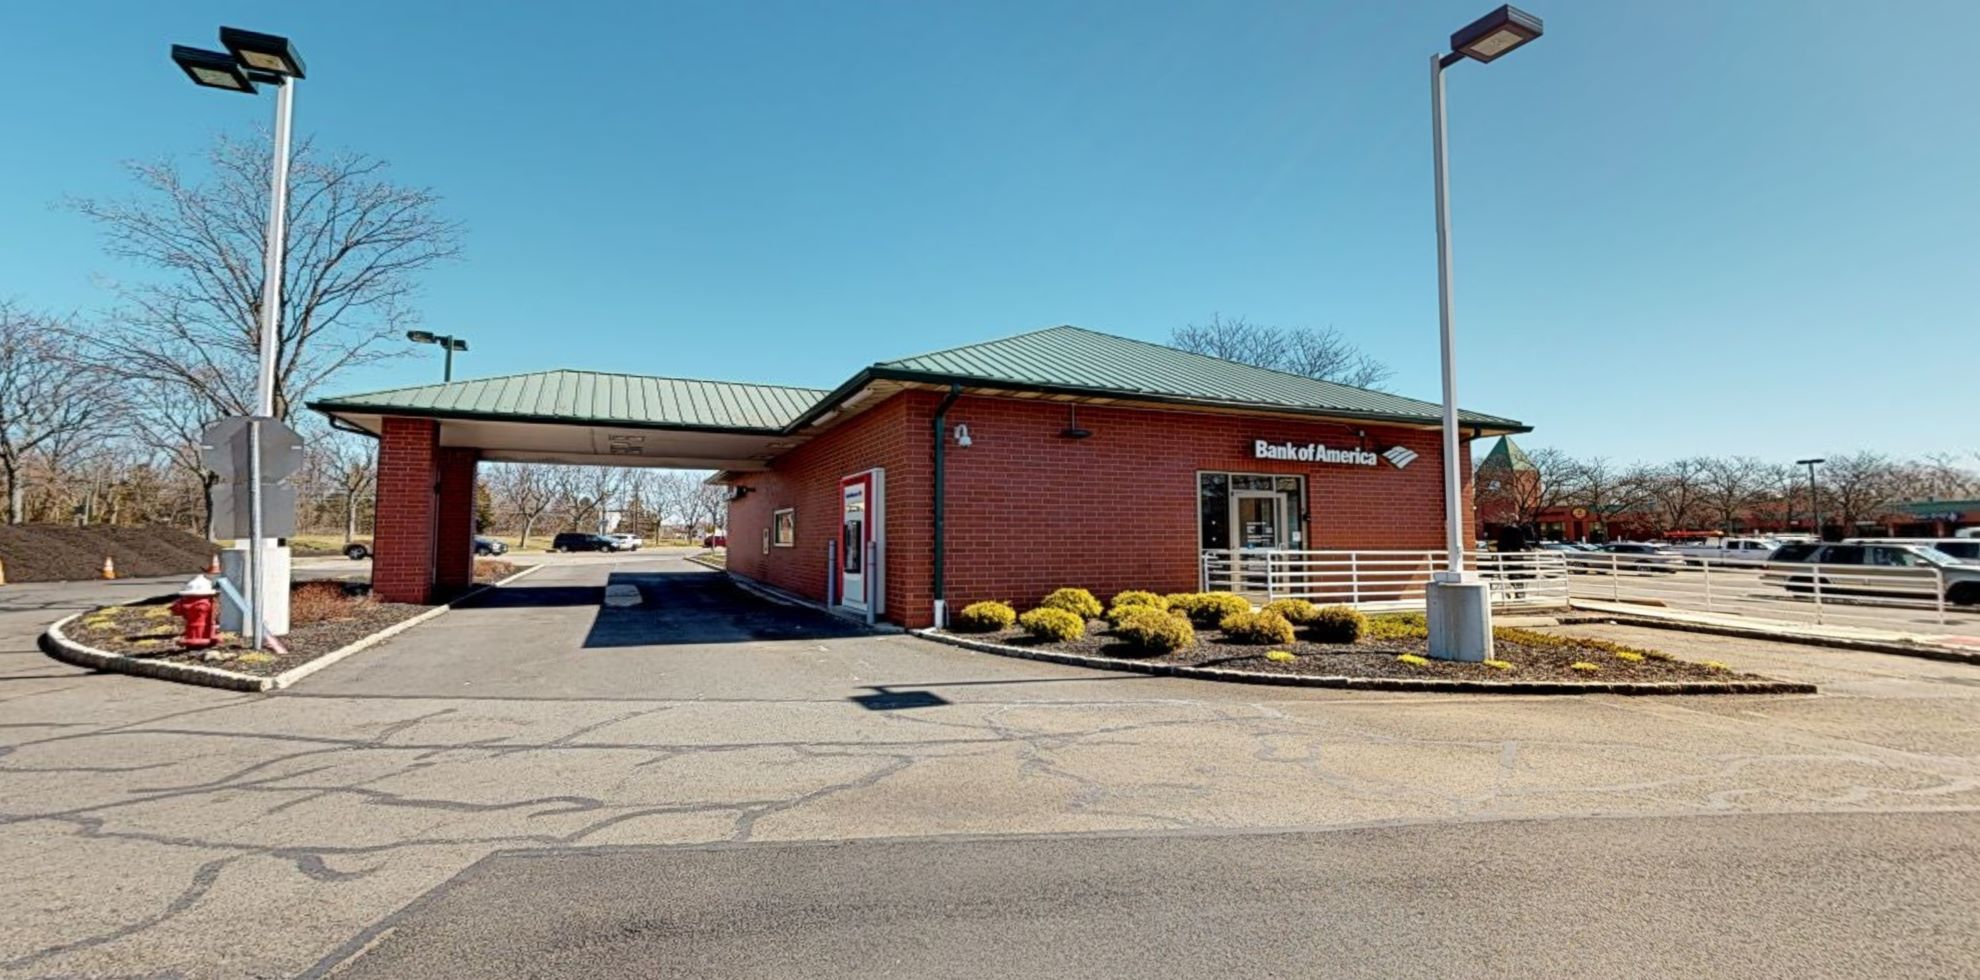 Bank of America financial center with drive-thru ATM | 1280 Centennial Ave, Piscataway, NJ 08854